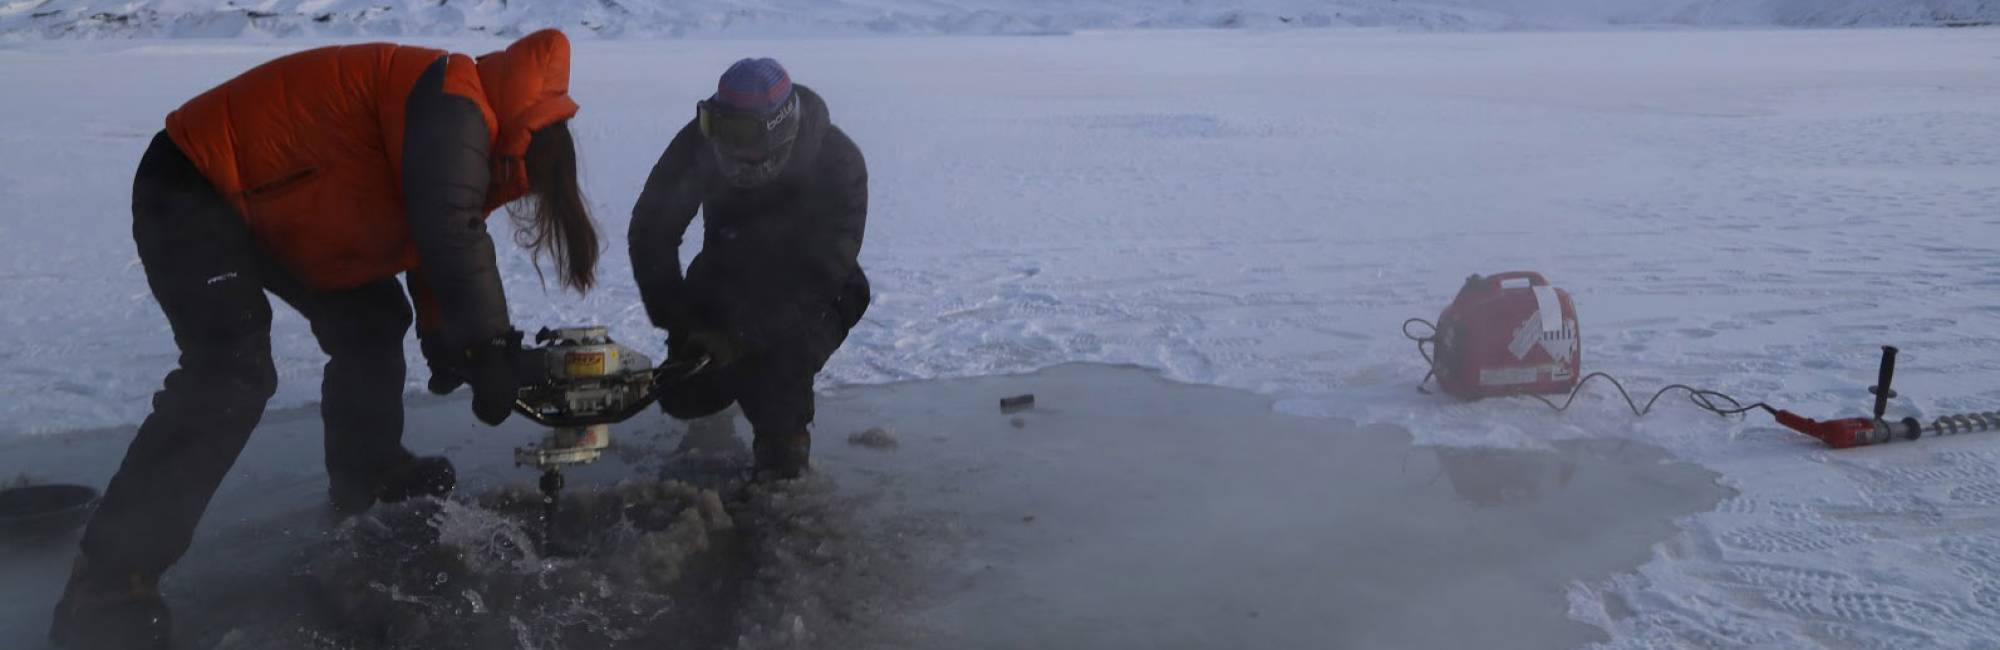 Two researchers use an augur to drill into ice atop a frozen river